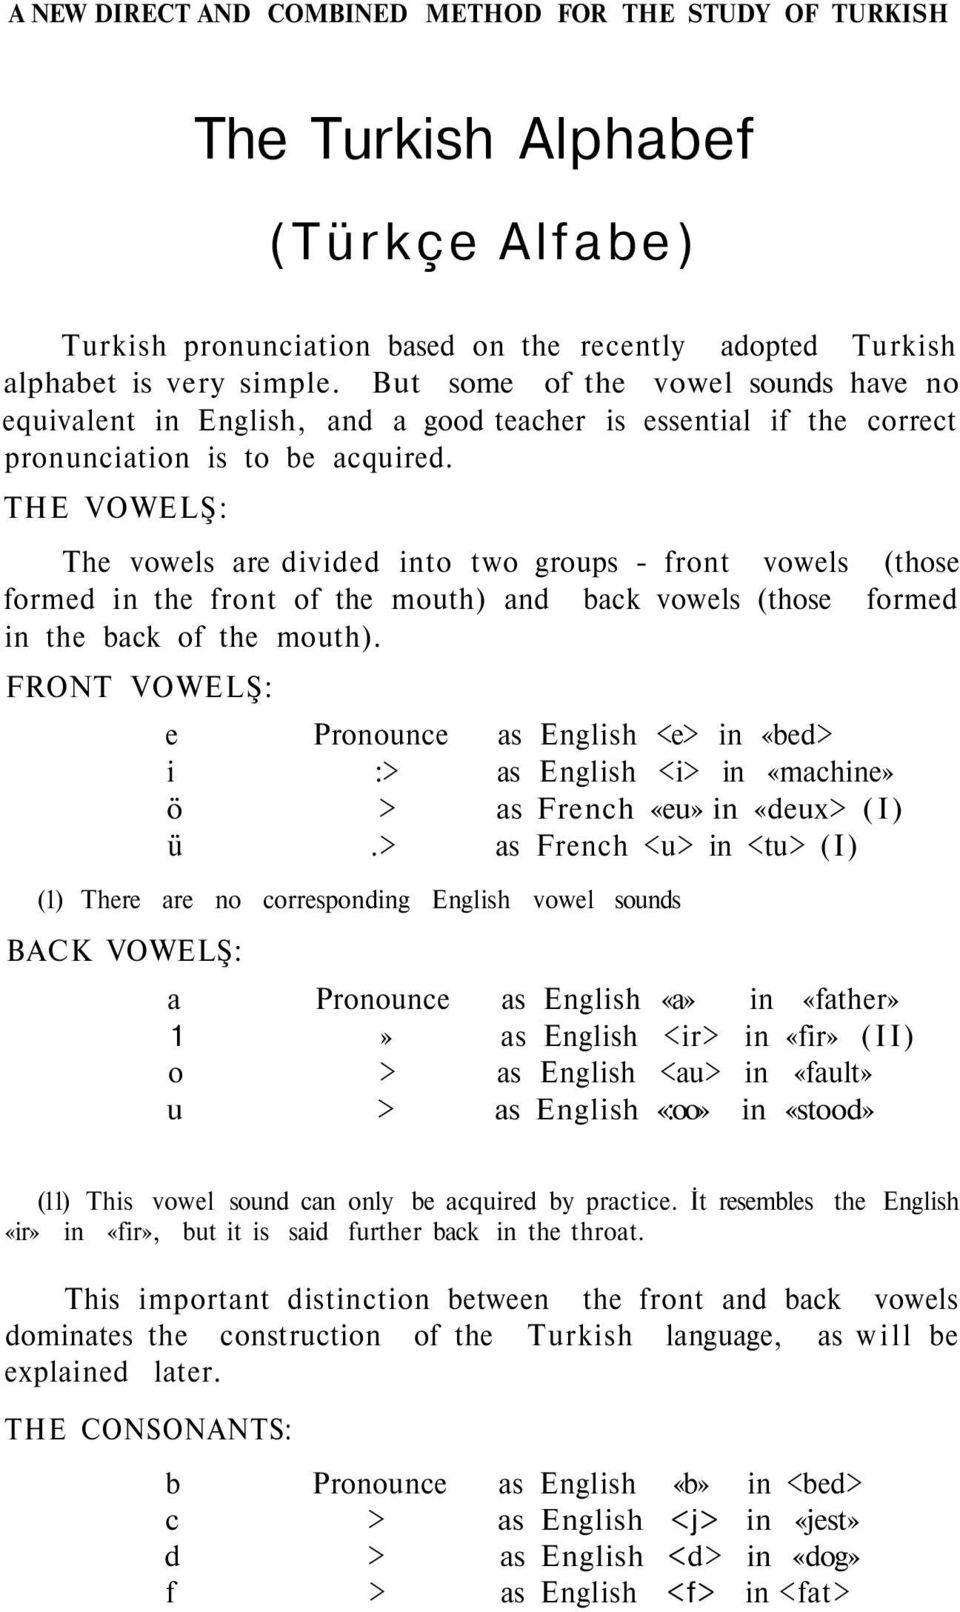 THE VOWELŞ: The vowels are divided into two groups - front vowels (those formed in the front of the mouth) and back vowels (those formed in the back of the mouth).